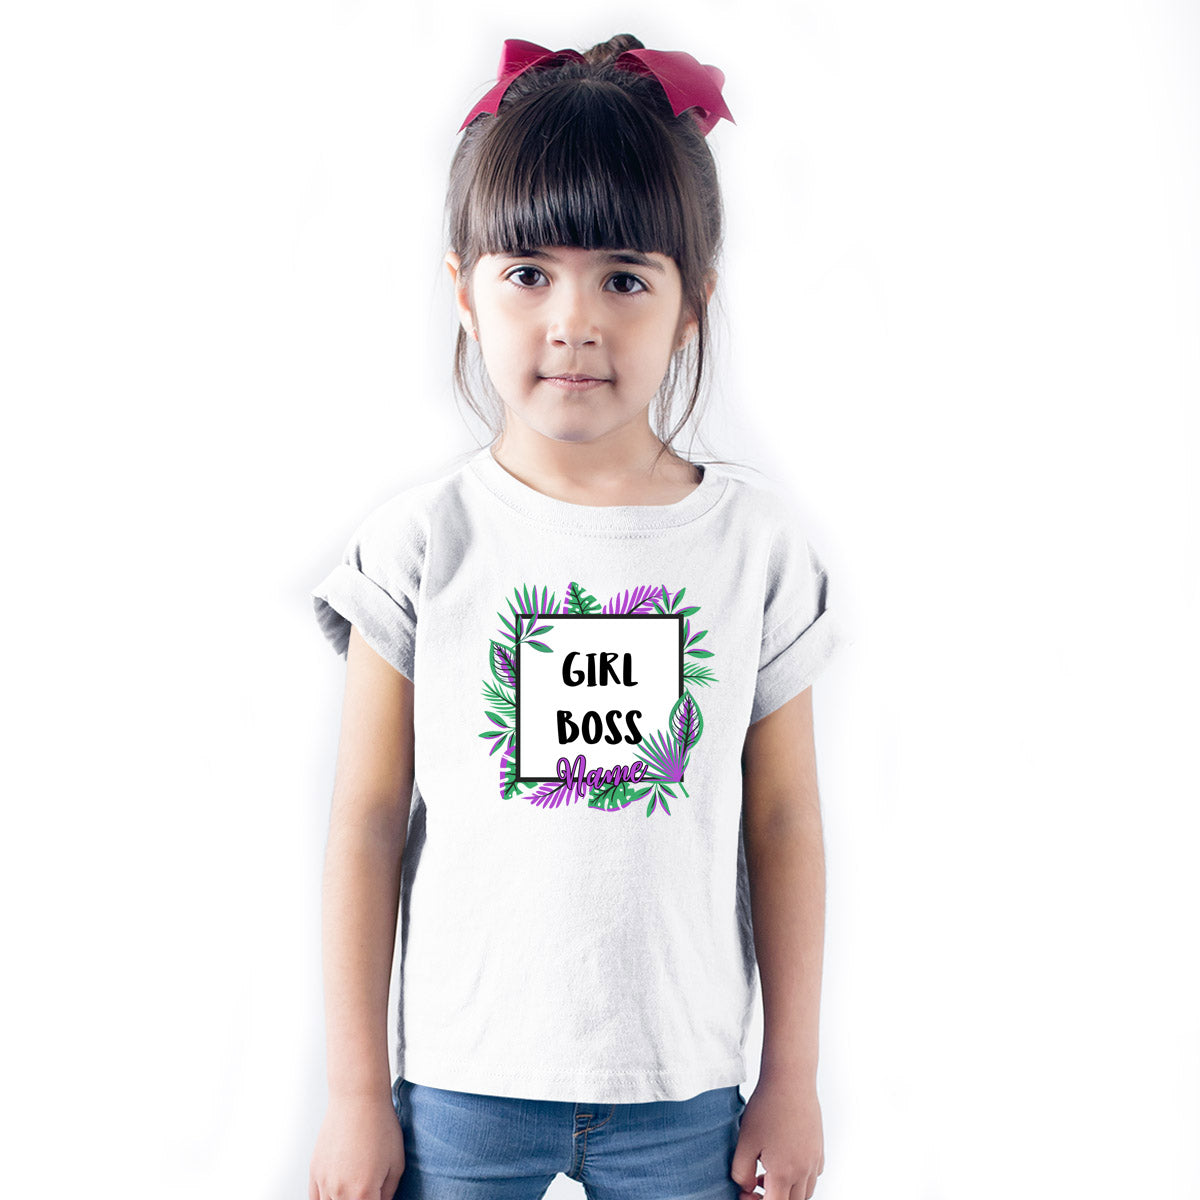 Sprinklecart Customized Girl Boss Poly-Cotton T Shirt Wear for Your Kid (White)